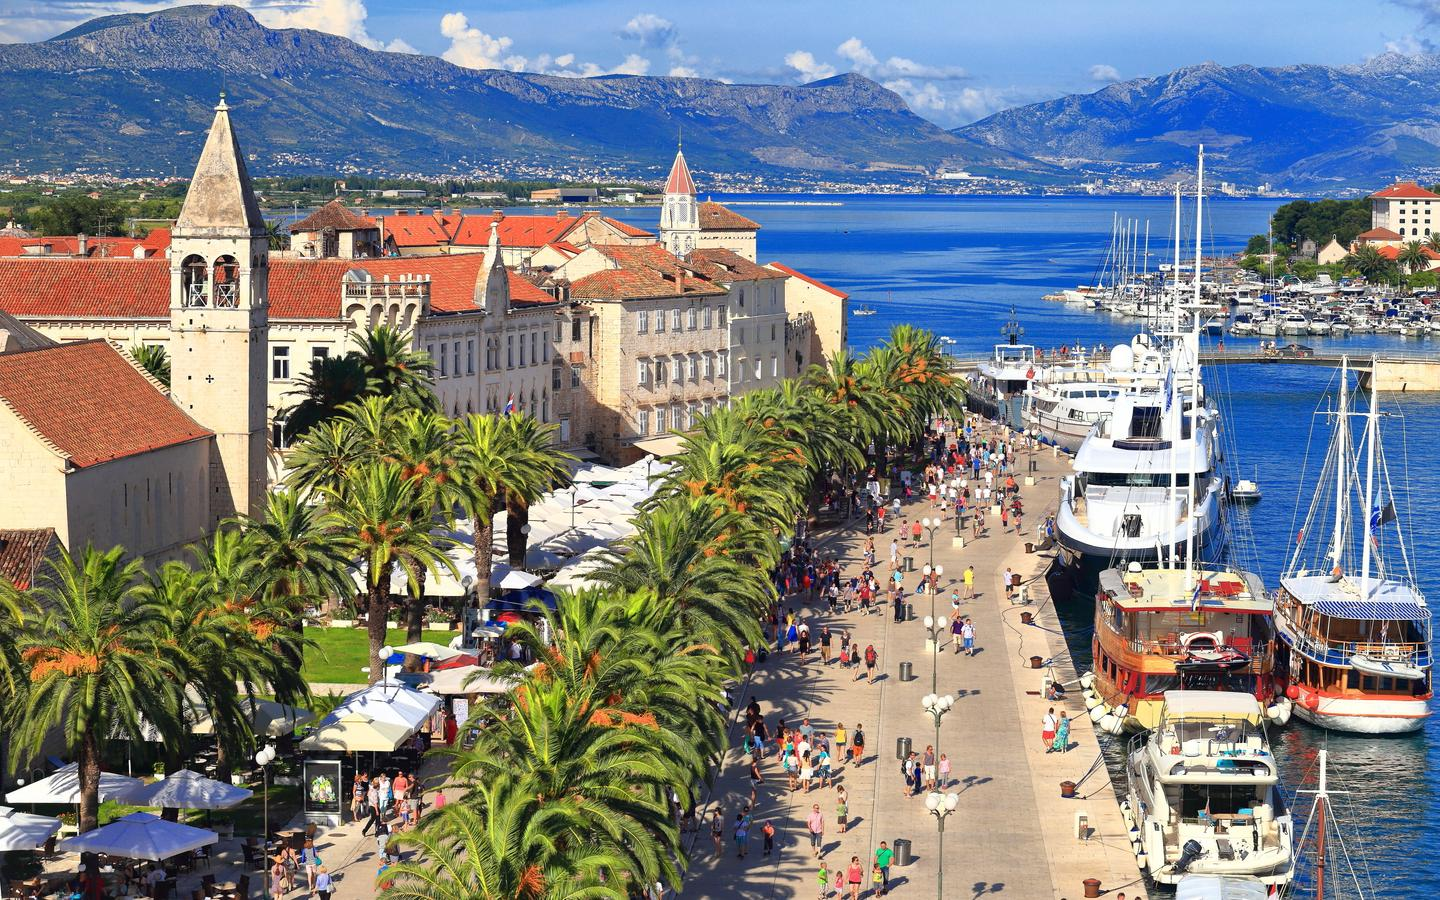 Hotels in Trogir